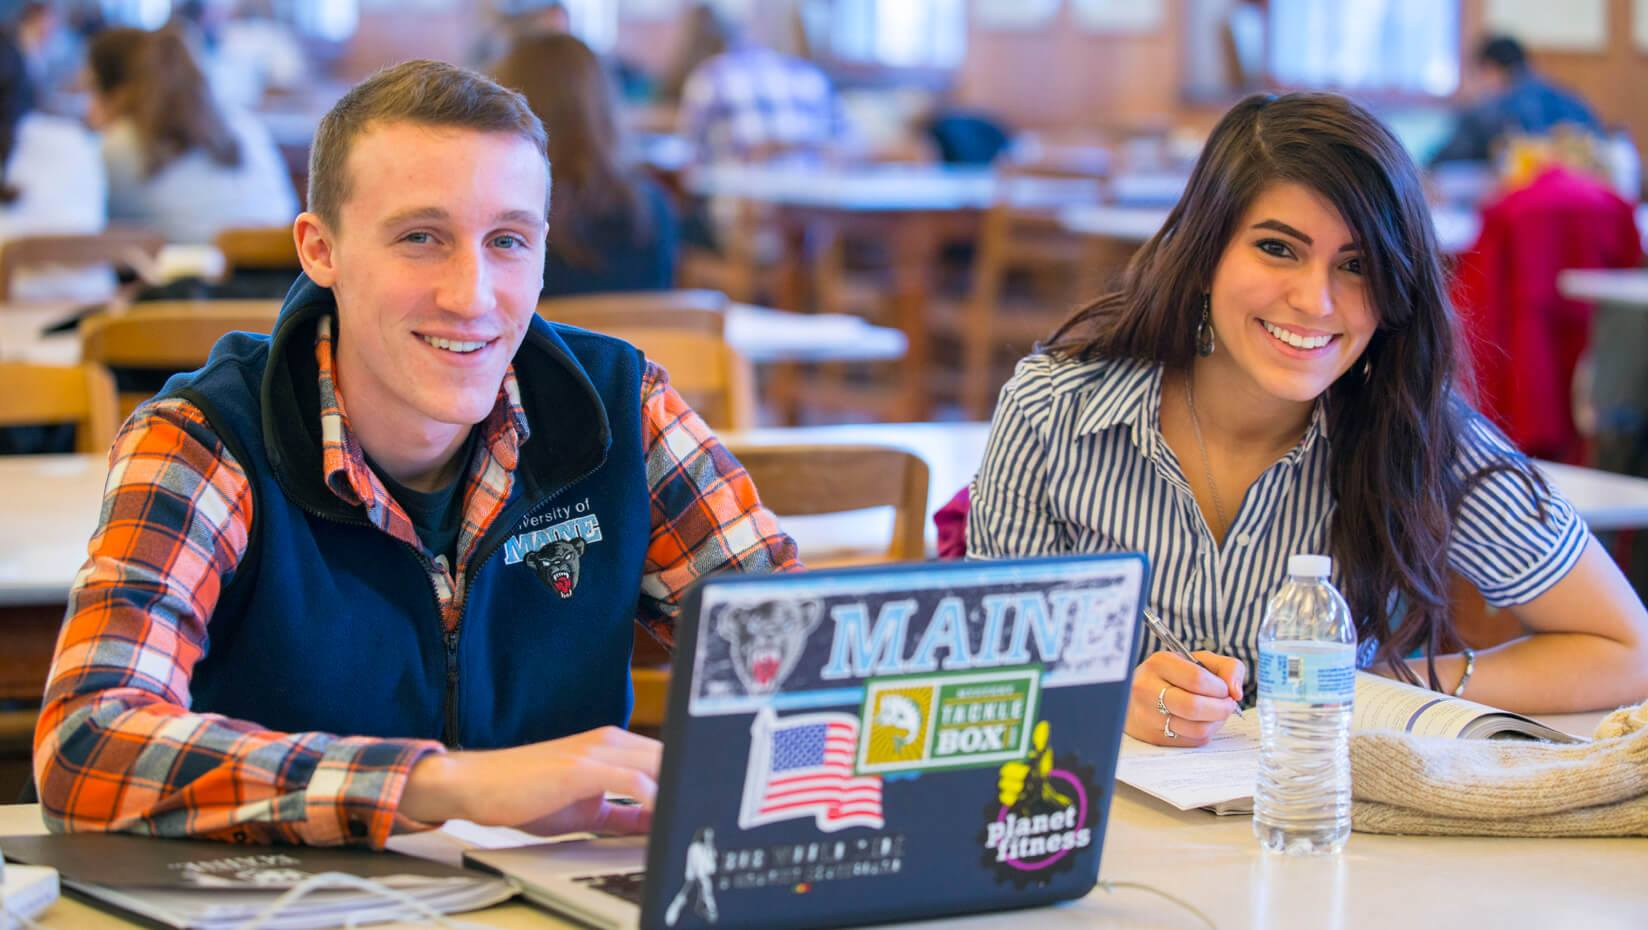 UMaine students in Fogler Library smiling with laptop